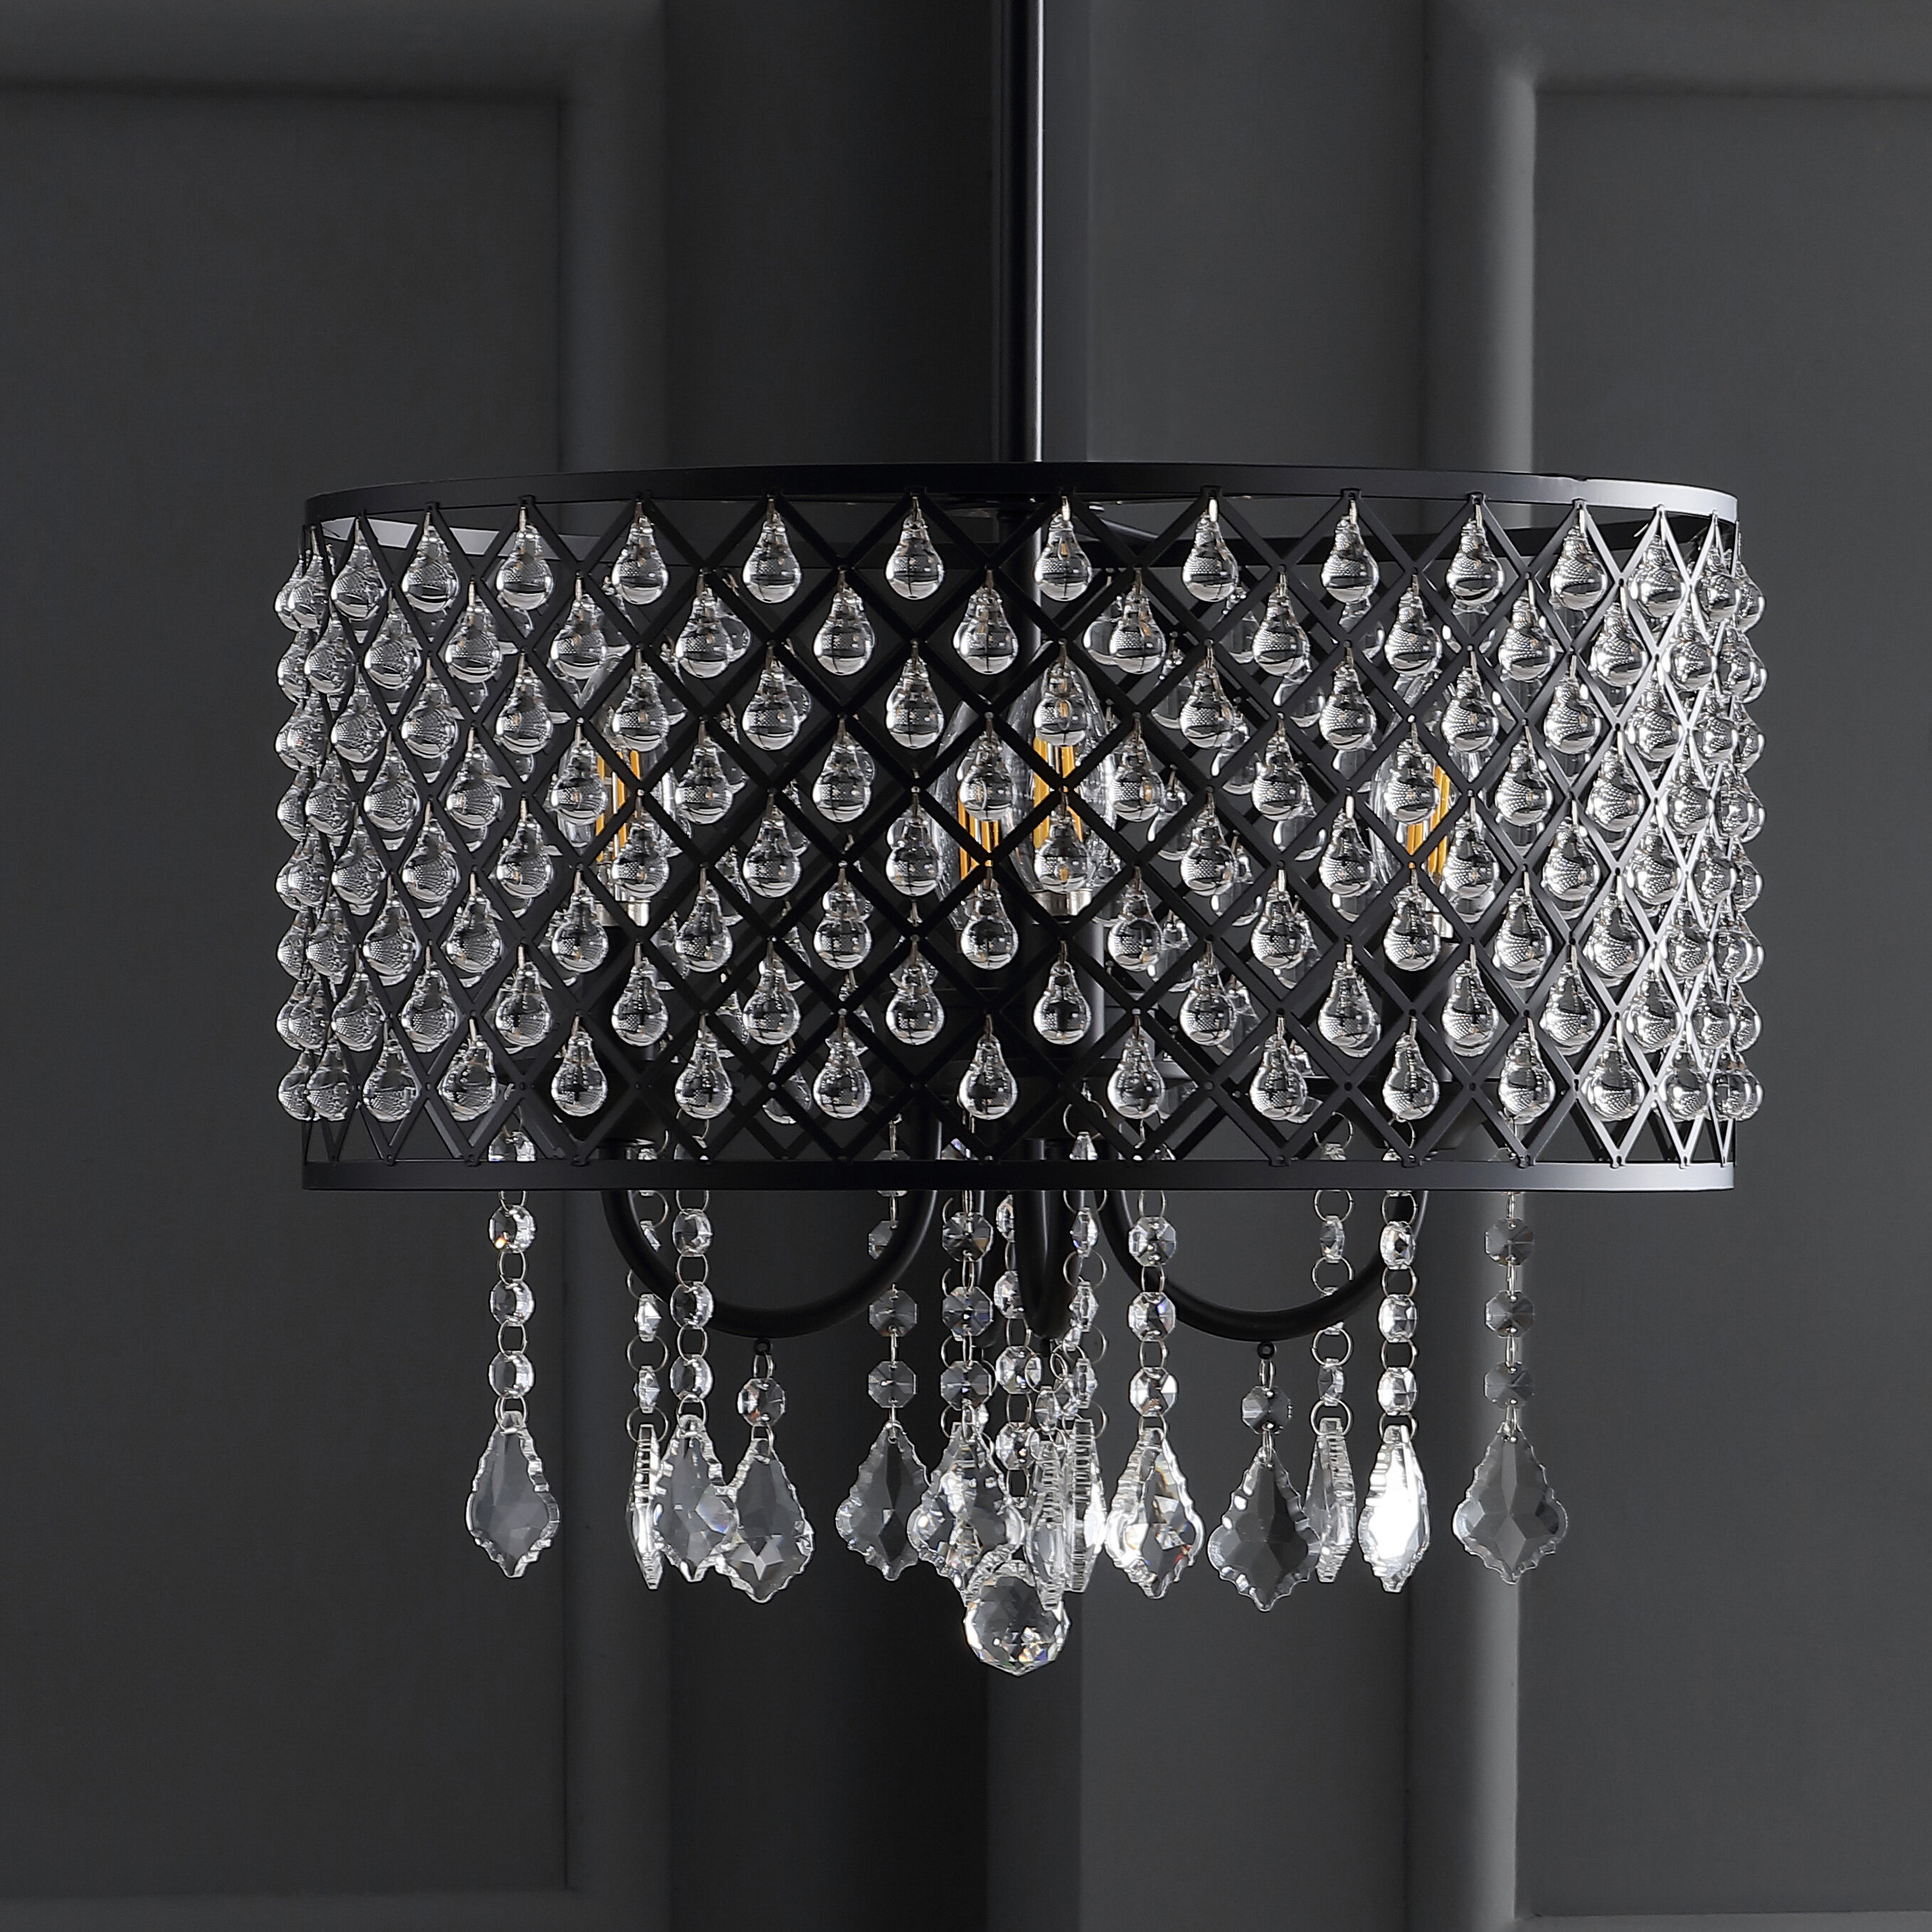 Collado 4 Light Drum Chandelier Intended For Gisselle 4 Light Drum Chandeliers (View 5 of 30)